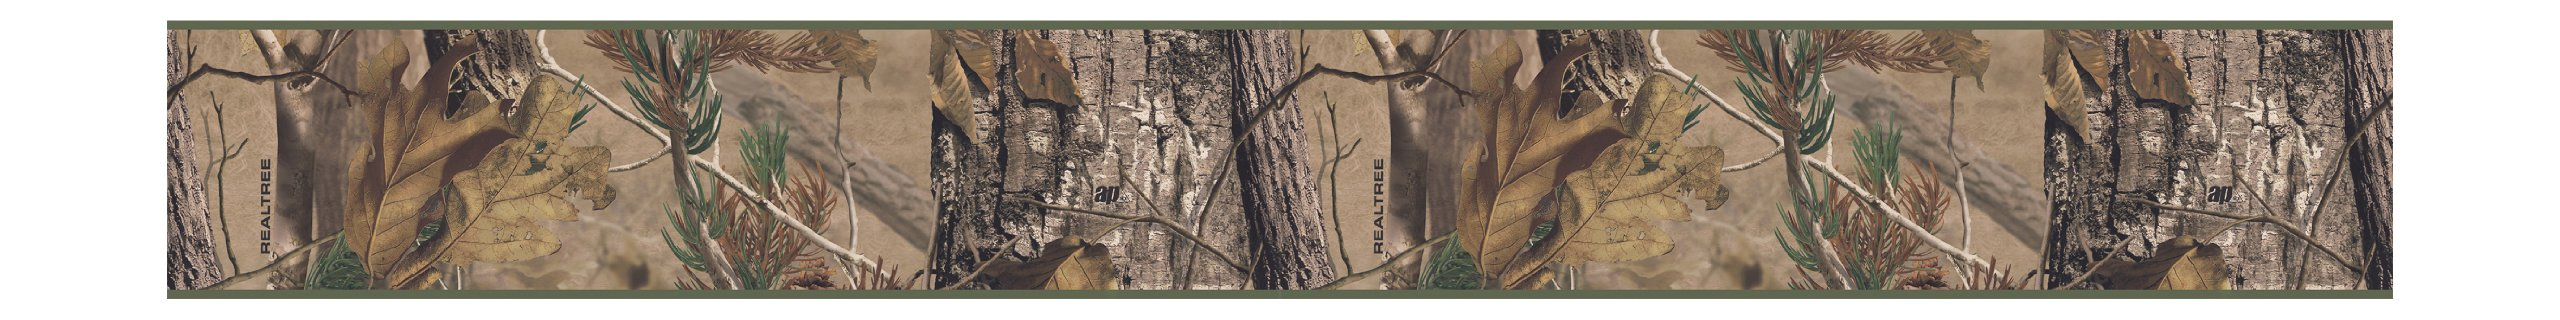 York Wallcoverings Lake Forest Lodge LM7937BD Camouflage Wallpaper Border - Ultra Removable